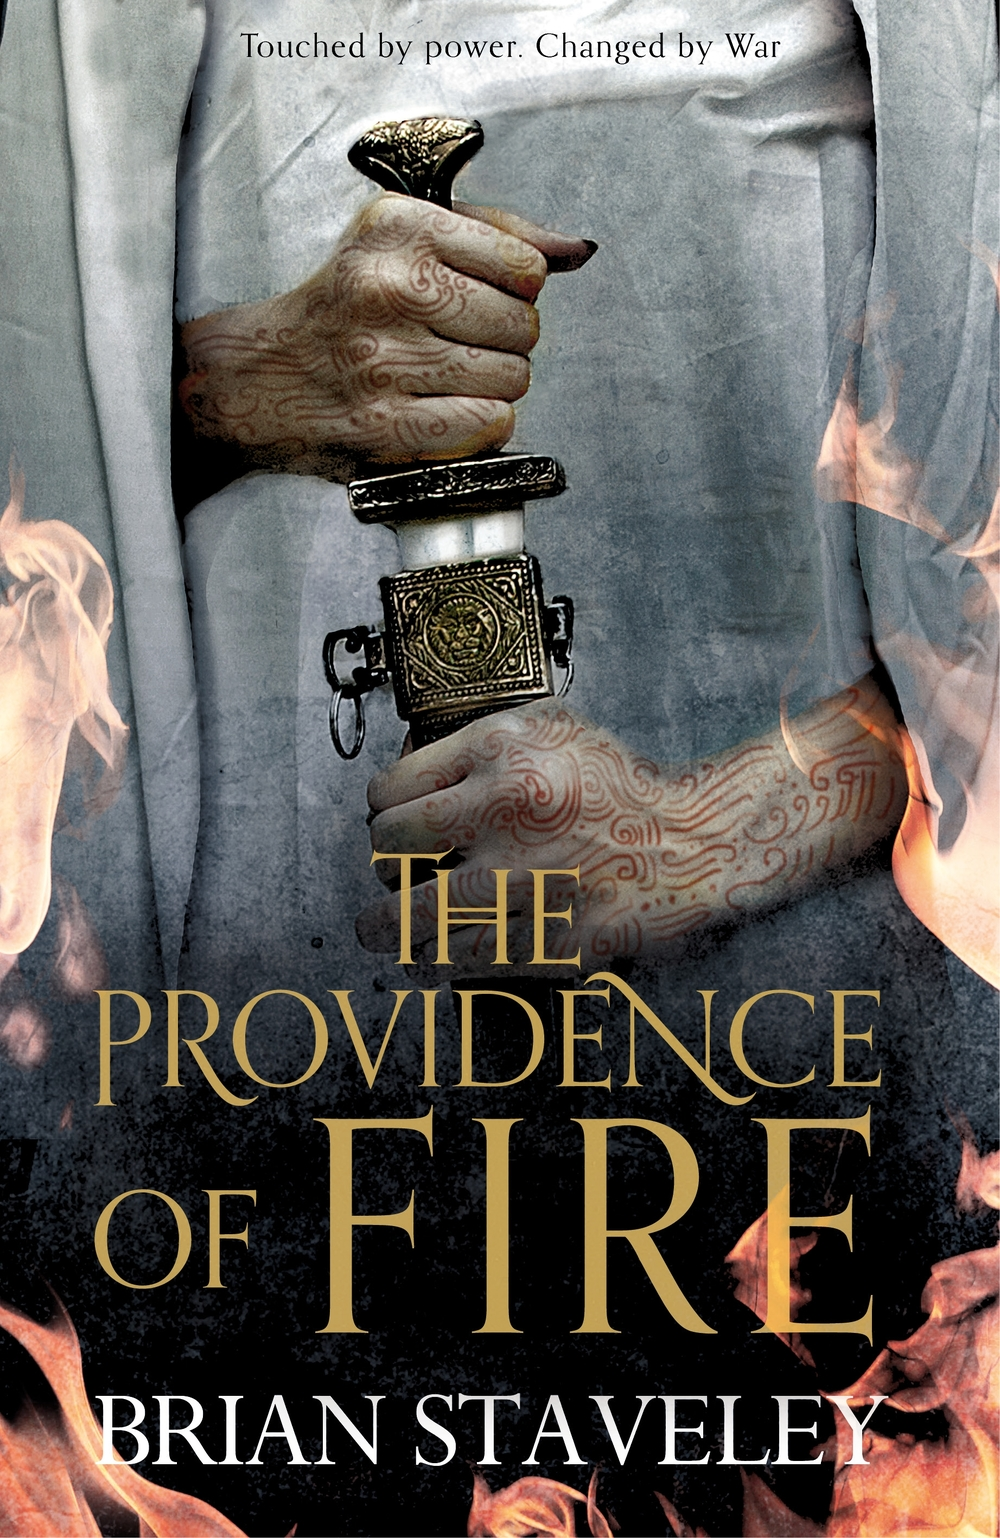 9780230770430The Providence of Fire_33.jpg